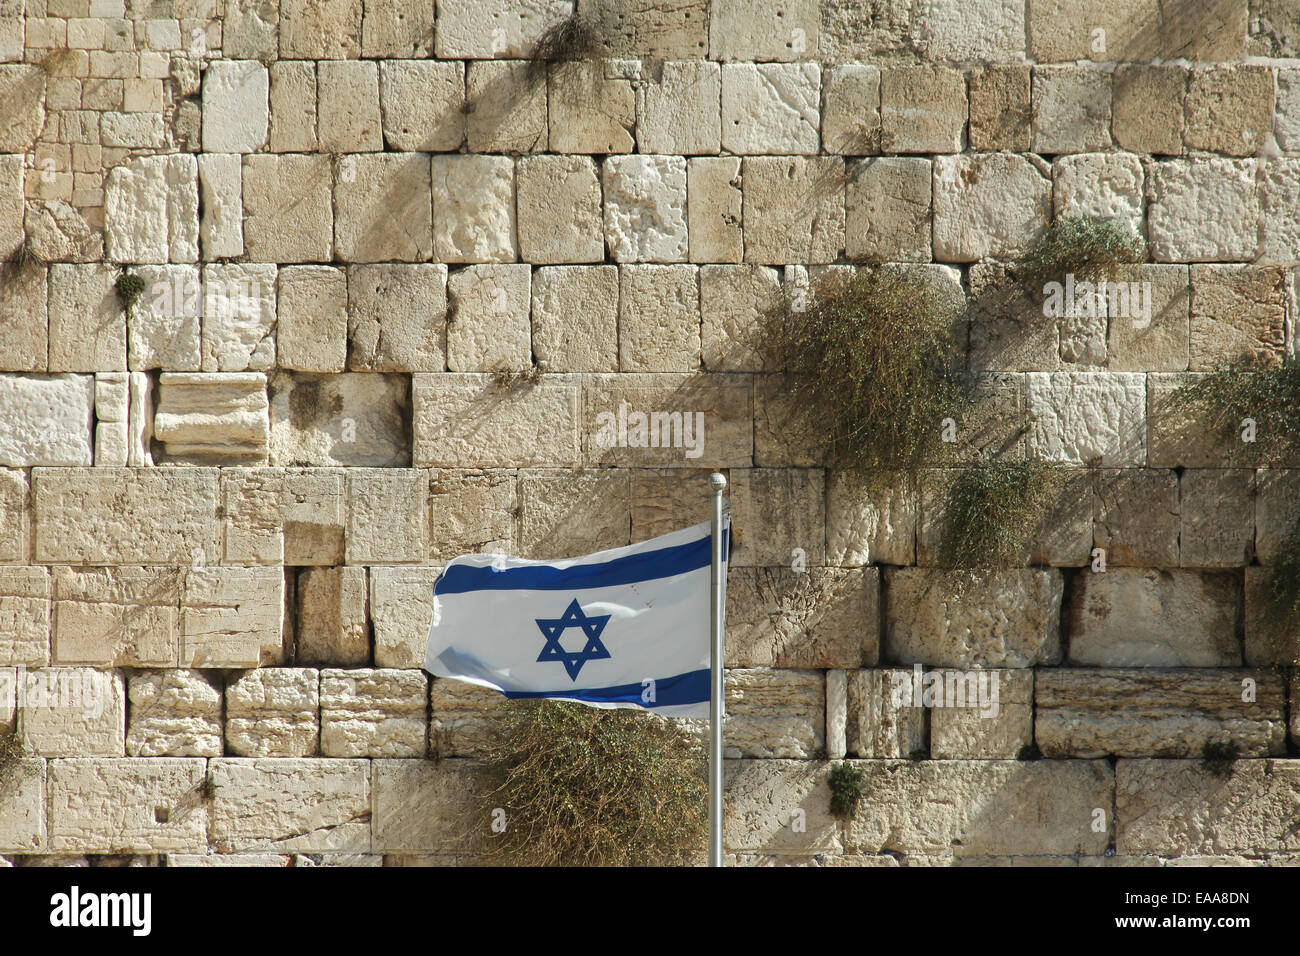 Stones of the wailing wall in Jerusalem - Stock Image